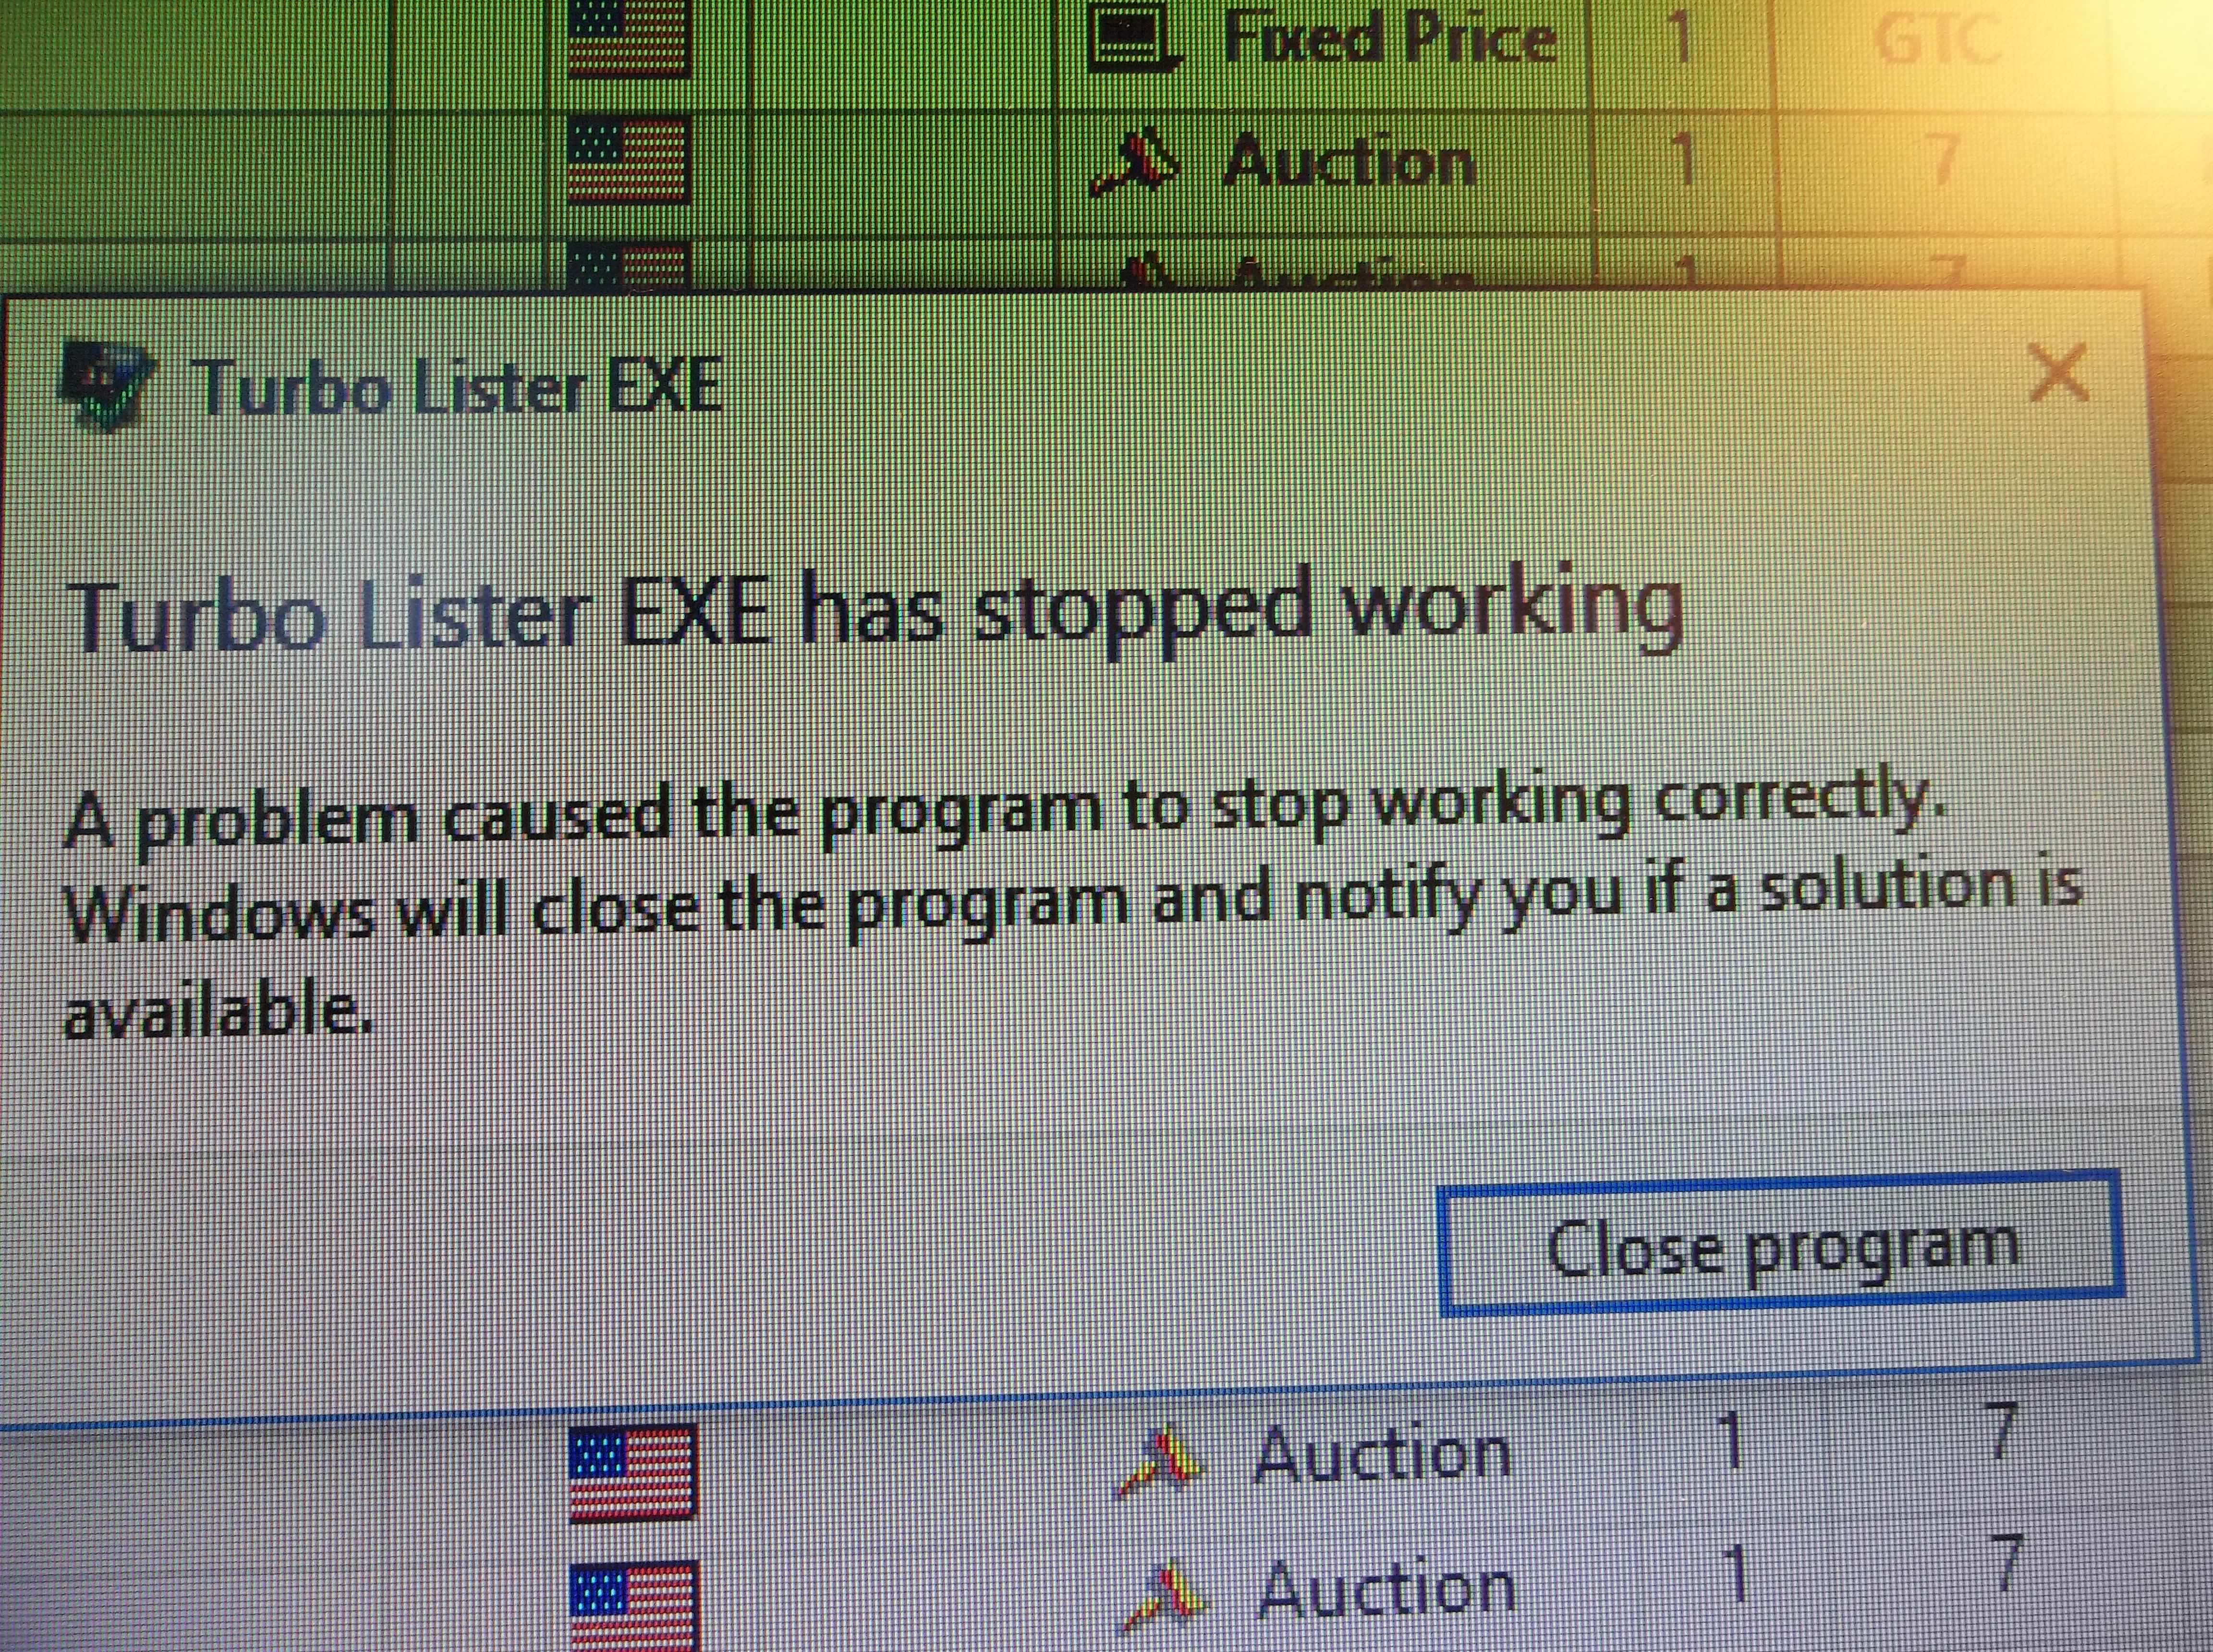 Turbo Lister update failure - Page 2 - The eBay Community